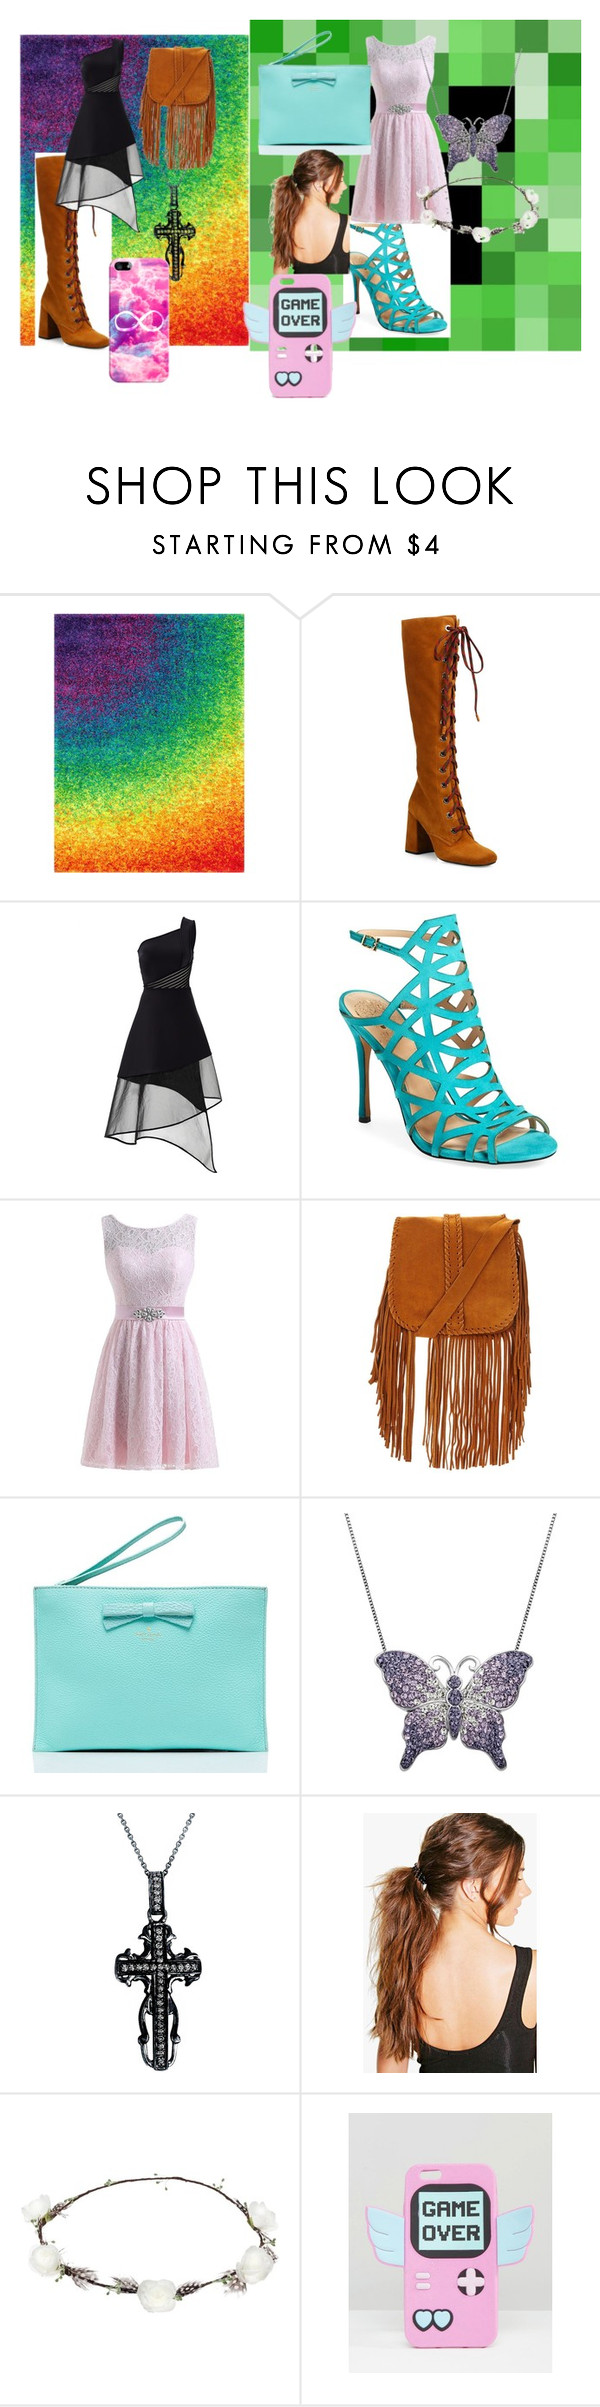 """""""Lizzie and Sierra's Party Outfit"""" by lizzie12304 on Polyvore featuring Loloi Rugs, Prada, David Koma, Vince Camuto, Kate Spade, Artistique, Mystic Light, Boohoo, Lipsy and Skinnydip"""